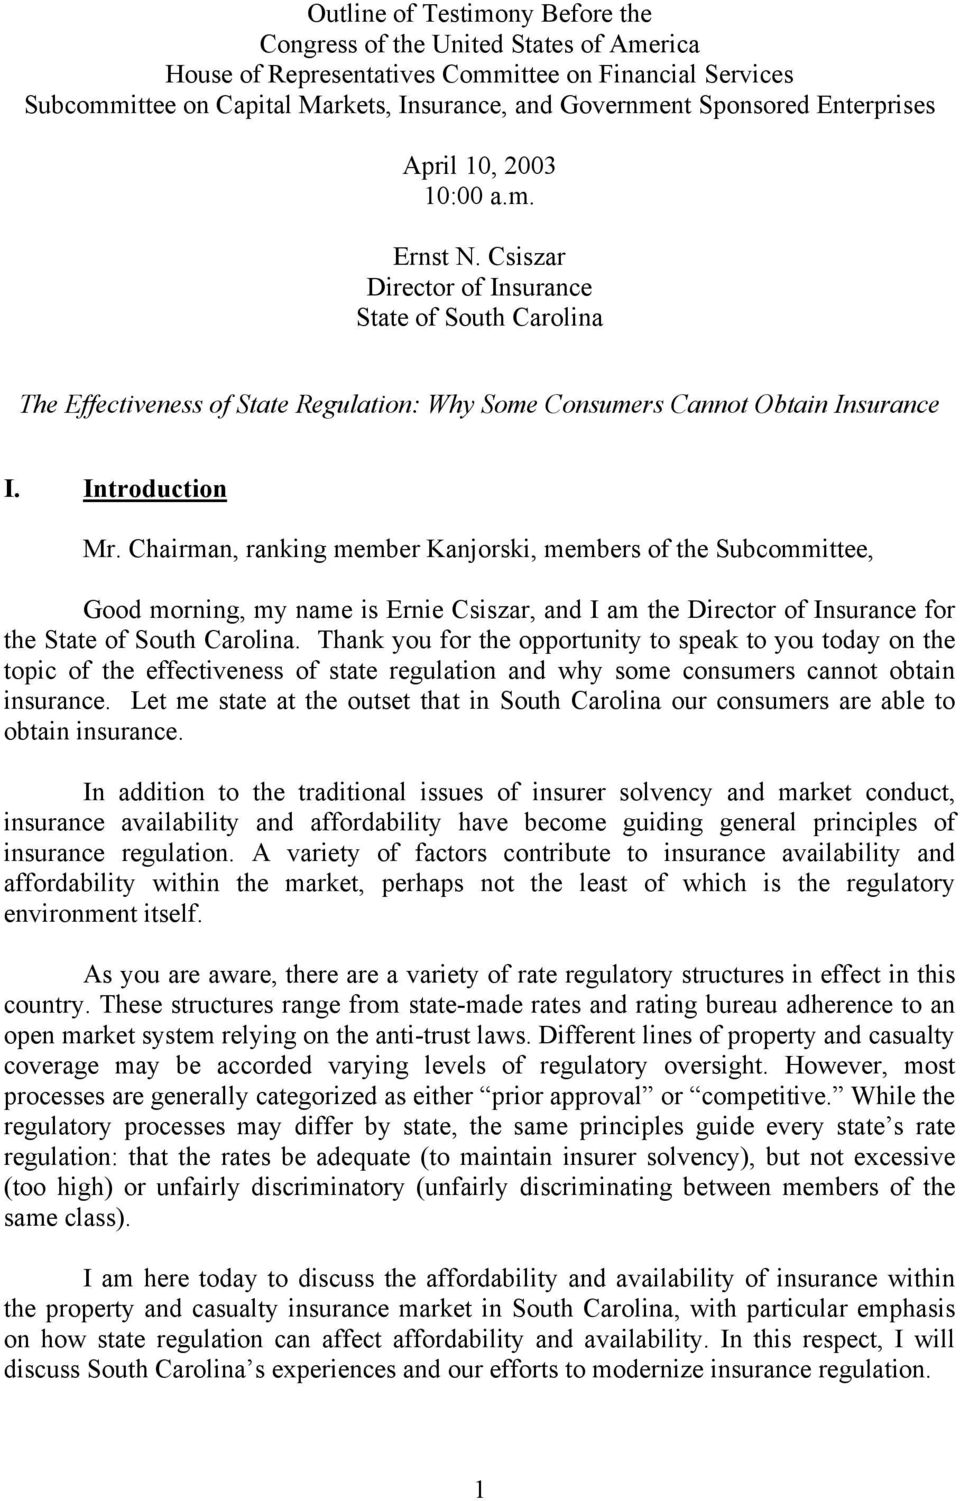 Introduction Mr. Chairman, ranking member Kanjorski, members of the Subcommittee, Good morning, my name is Ernie Csiszar, and I am the Director of Insurance for the State of South Carolina.